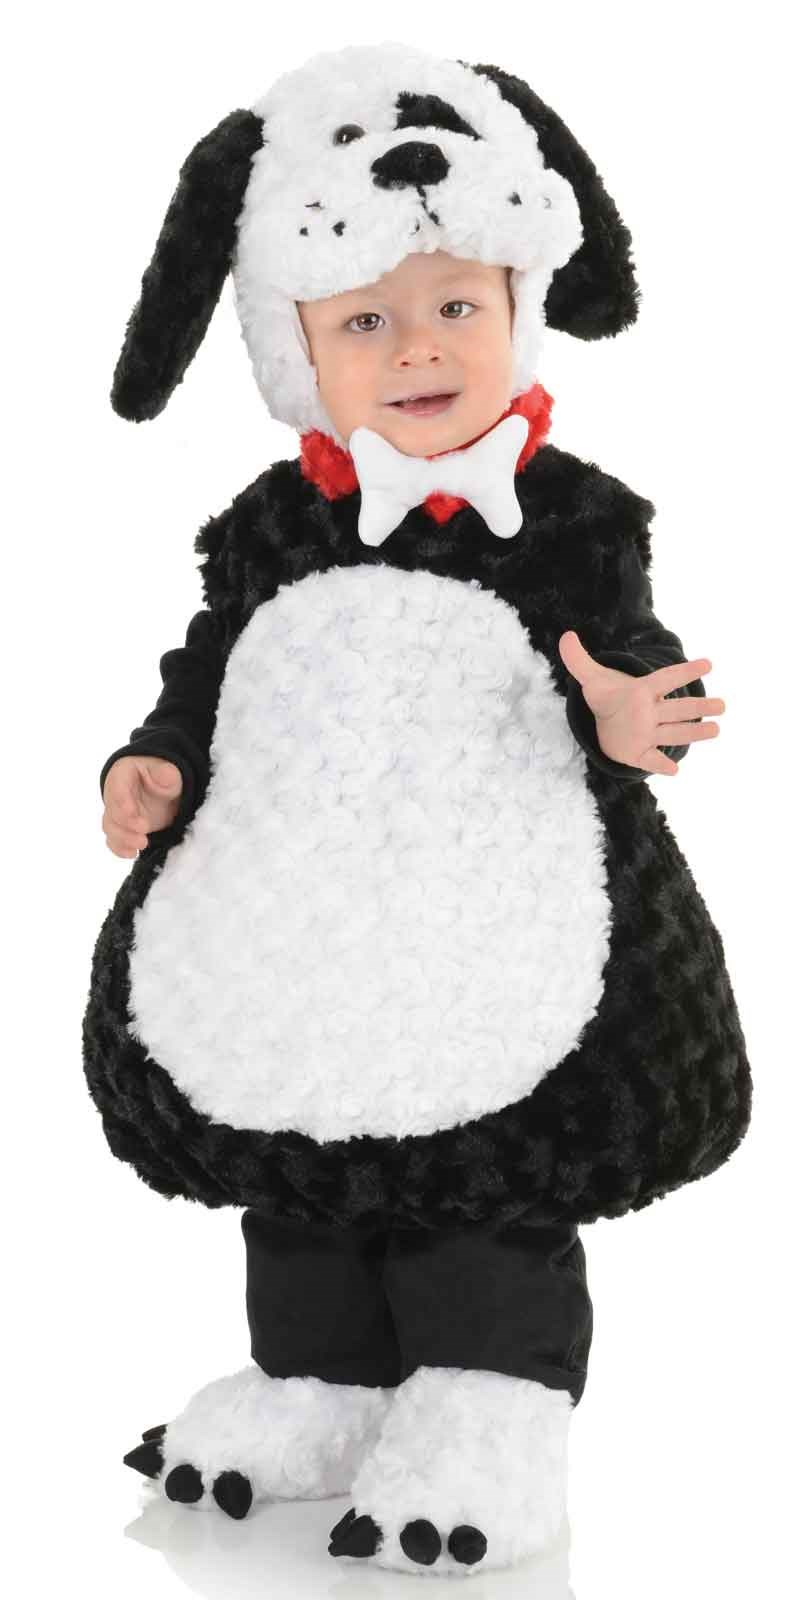 Lil Black and White Puppy Toddler/Child Costume M (18-24 Months)